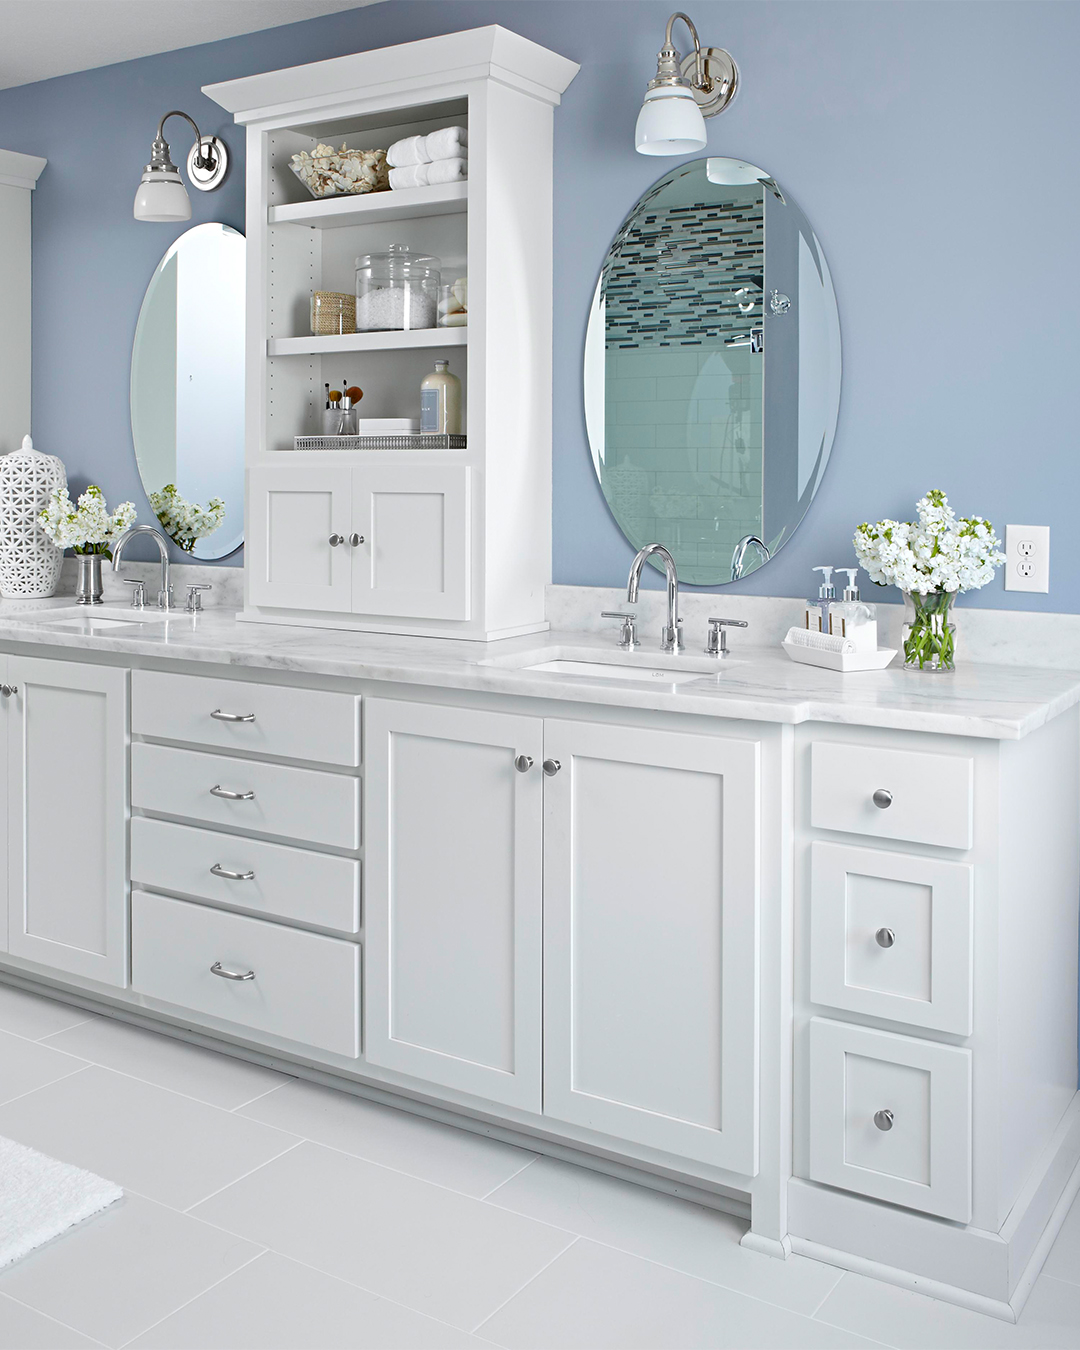 Strange The 12 Best Bathroom Paint Colors Our Editors Swear By Home Interior And Landscaping Ologienasavecom